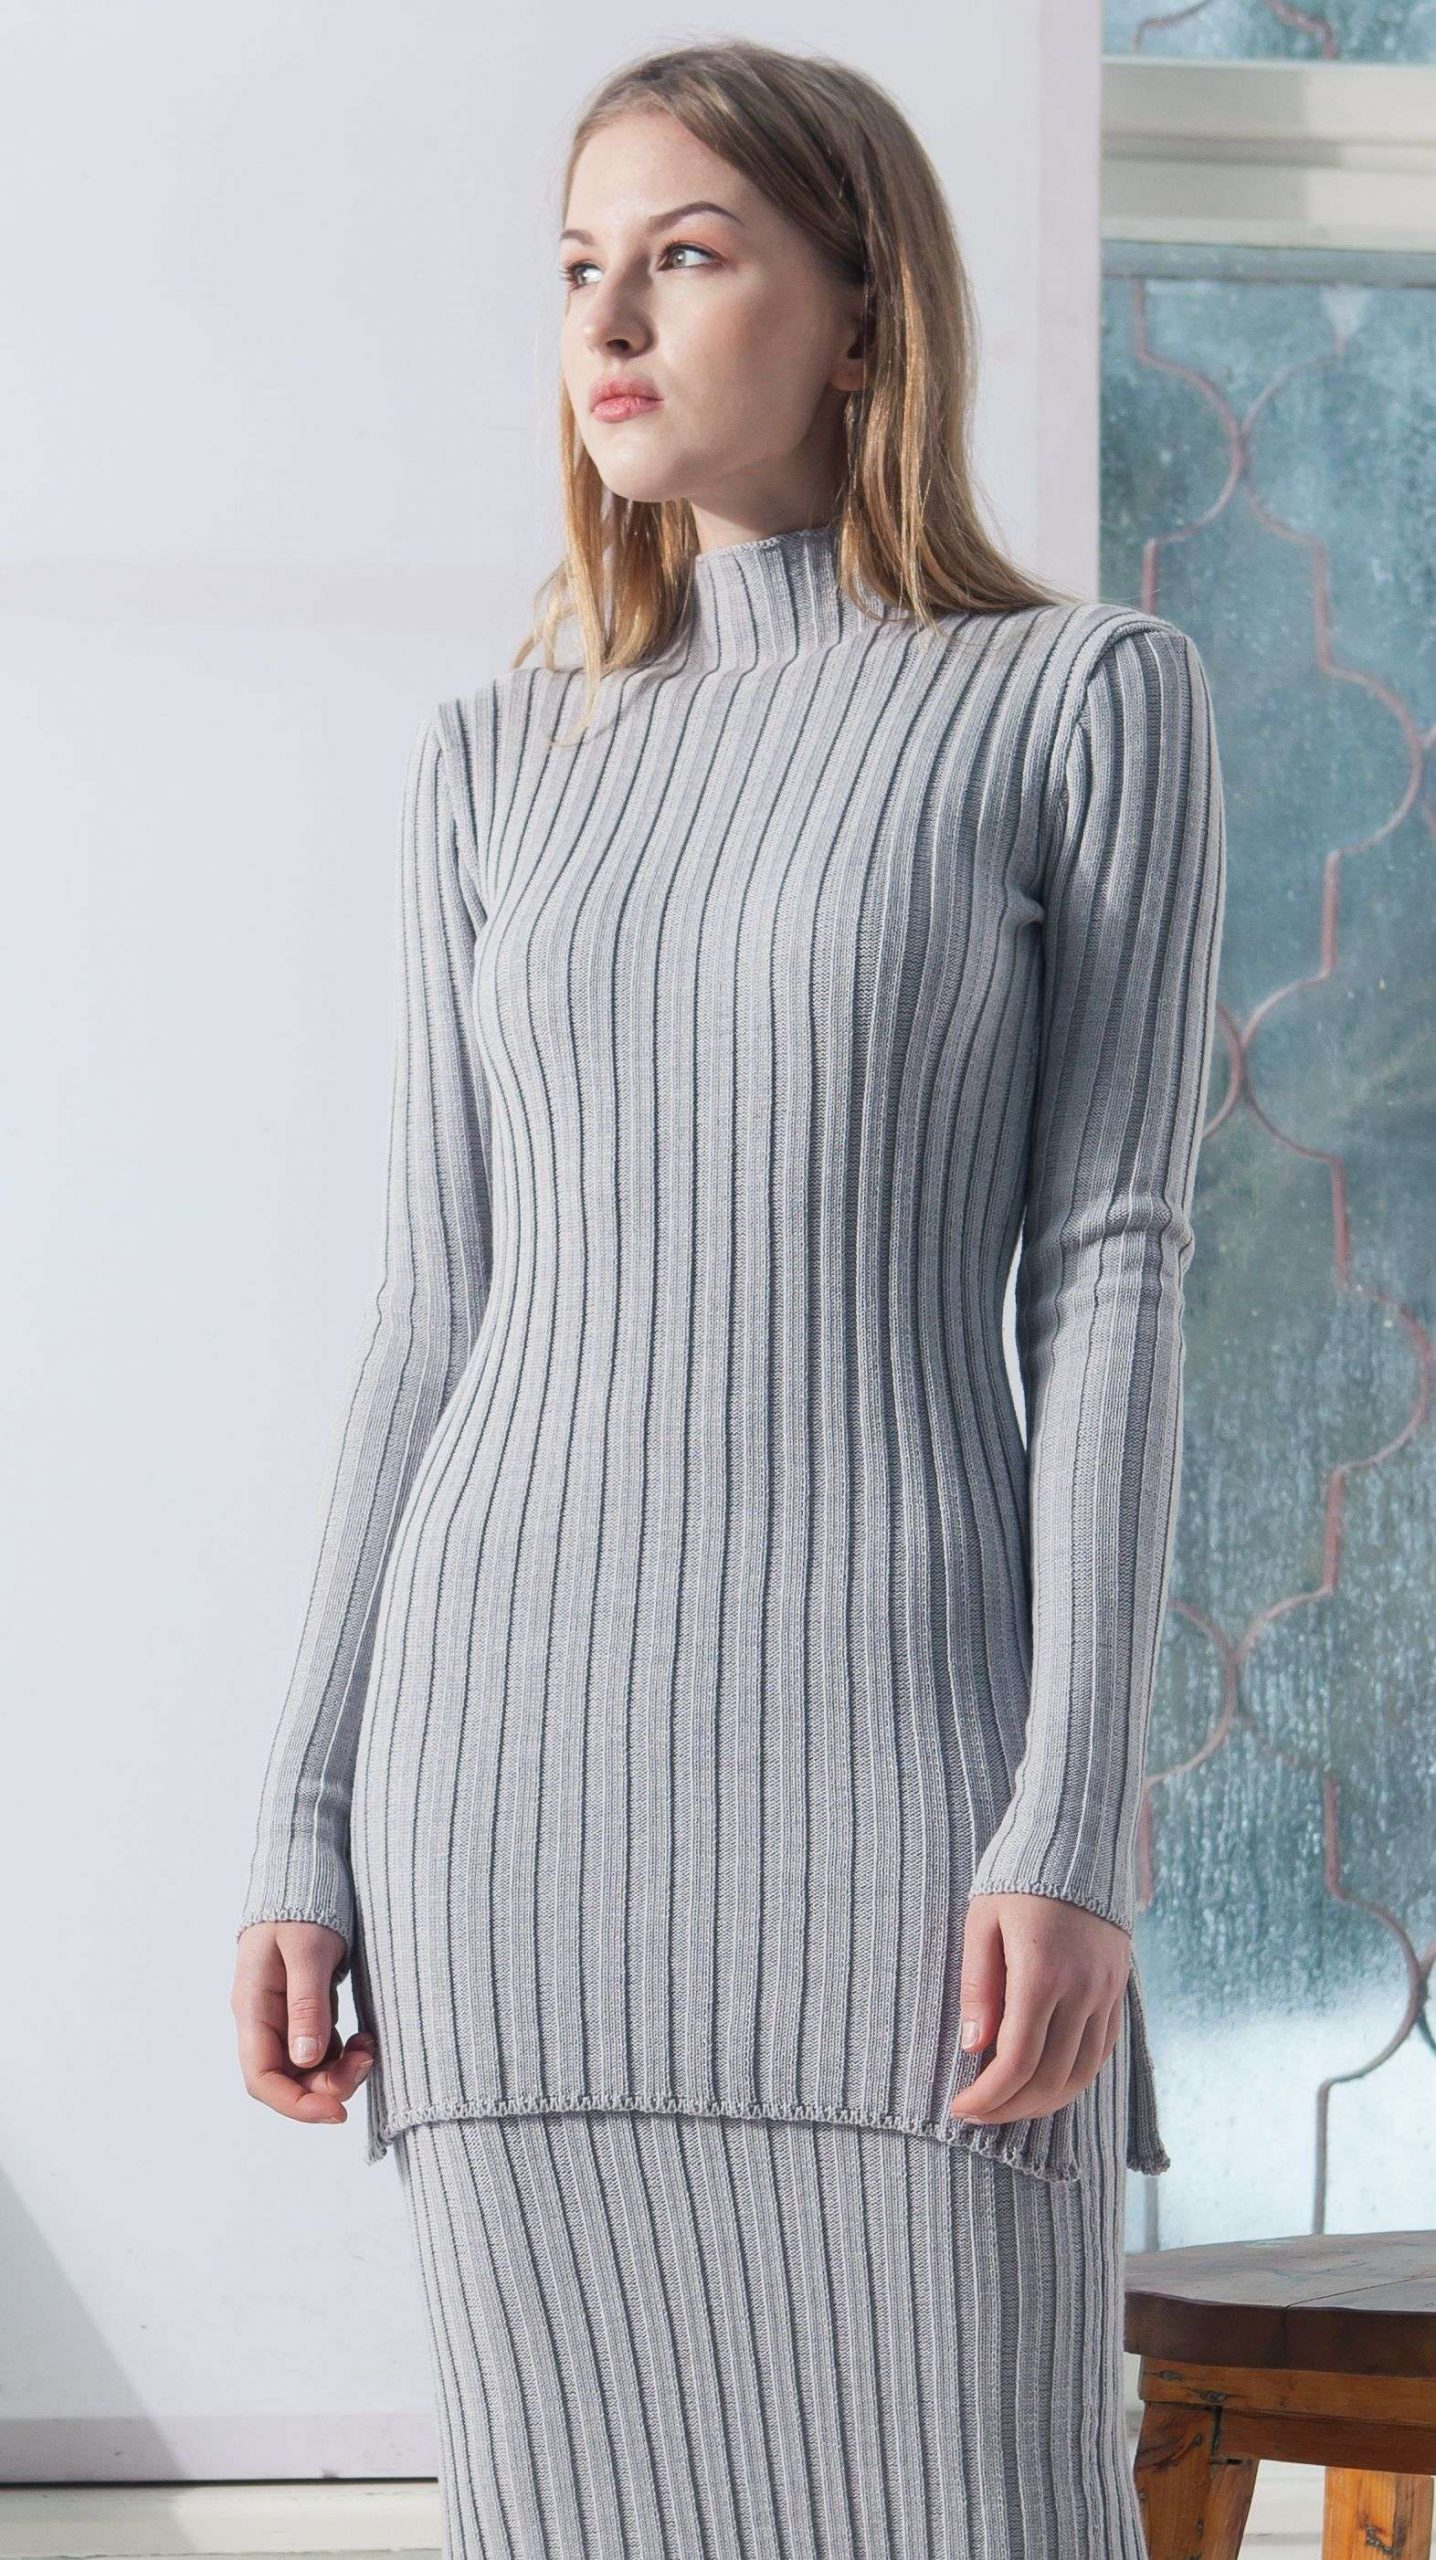 damen pullover grey ribbed pullover and skirt duffy krista elsta  grey ribbed pullover and skirt duffy